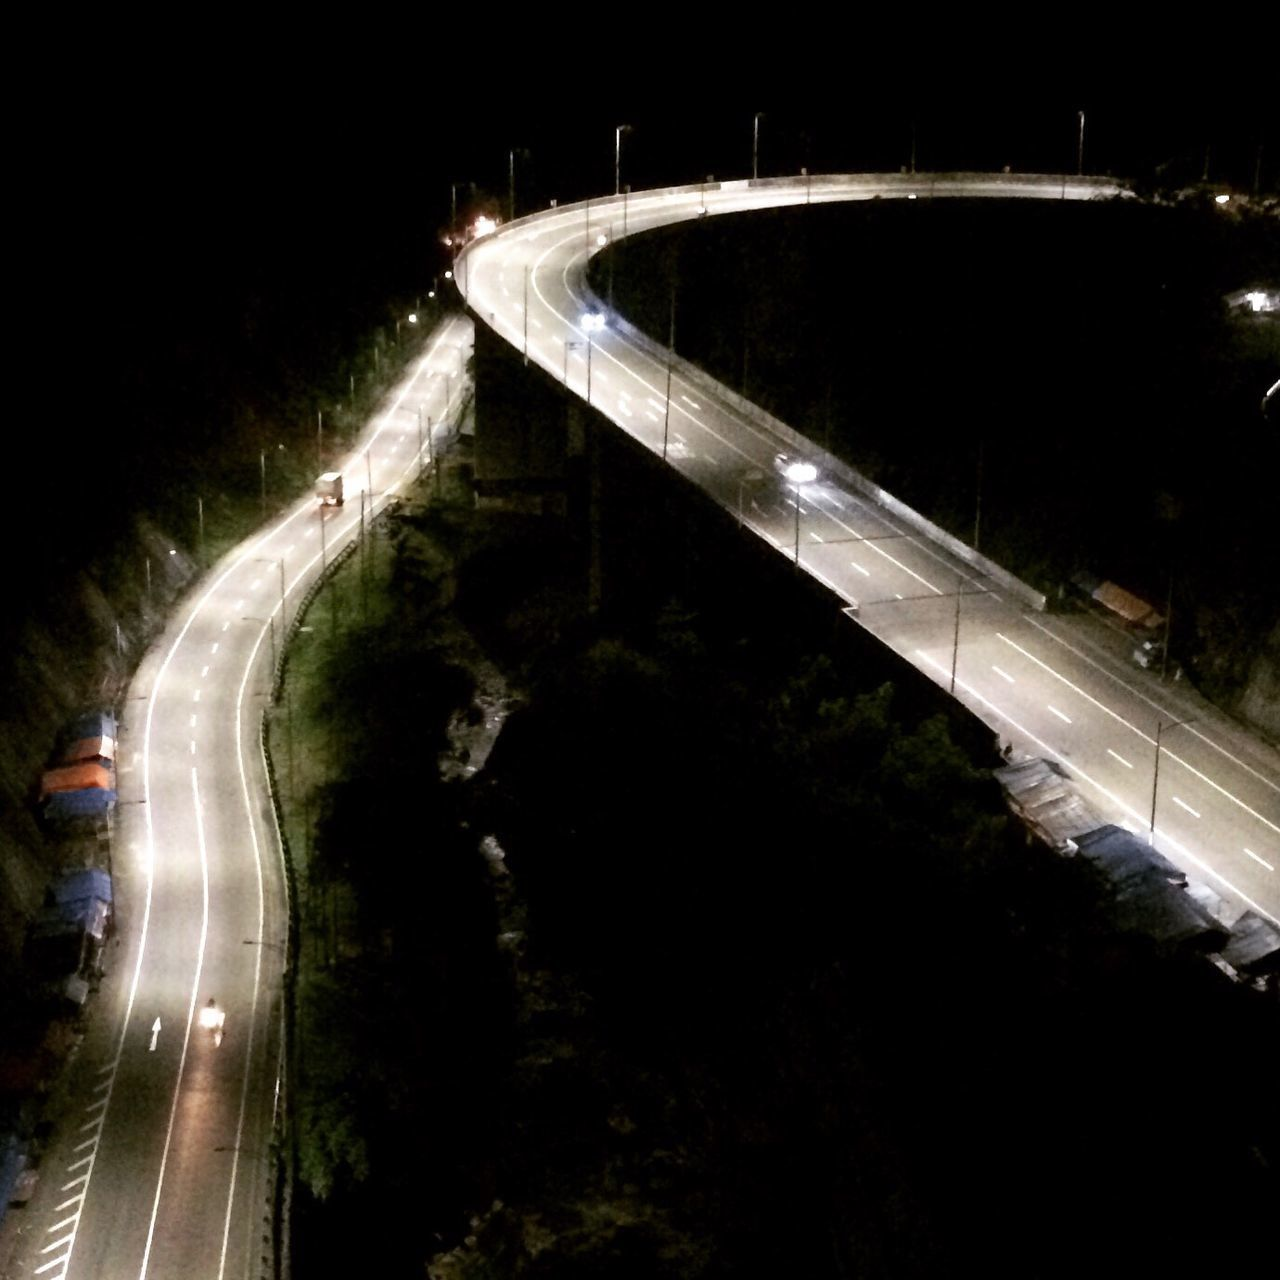 night, illuminated, speed, light trail, road, transportation, motion, curve, long exposure, outdoors, no people, nature, tree